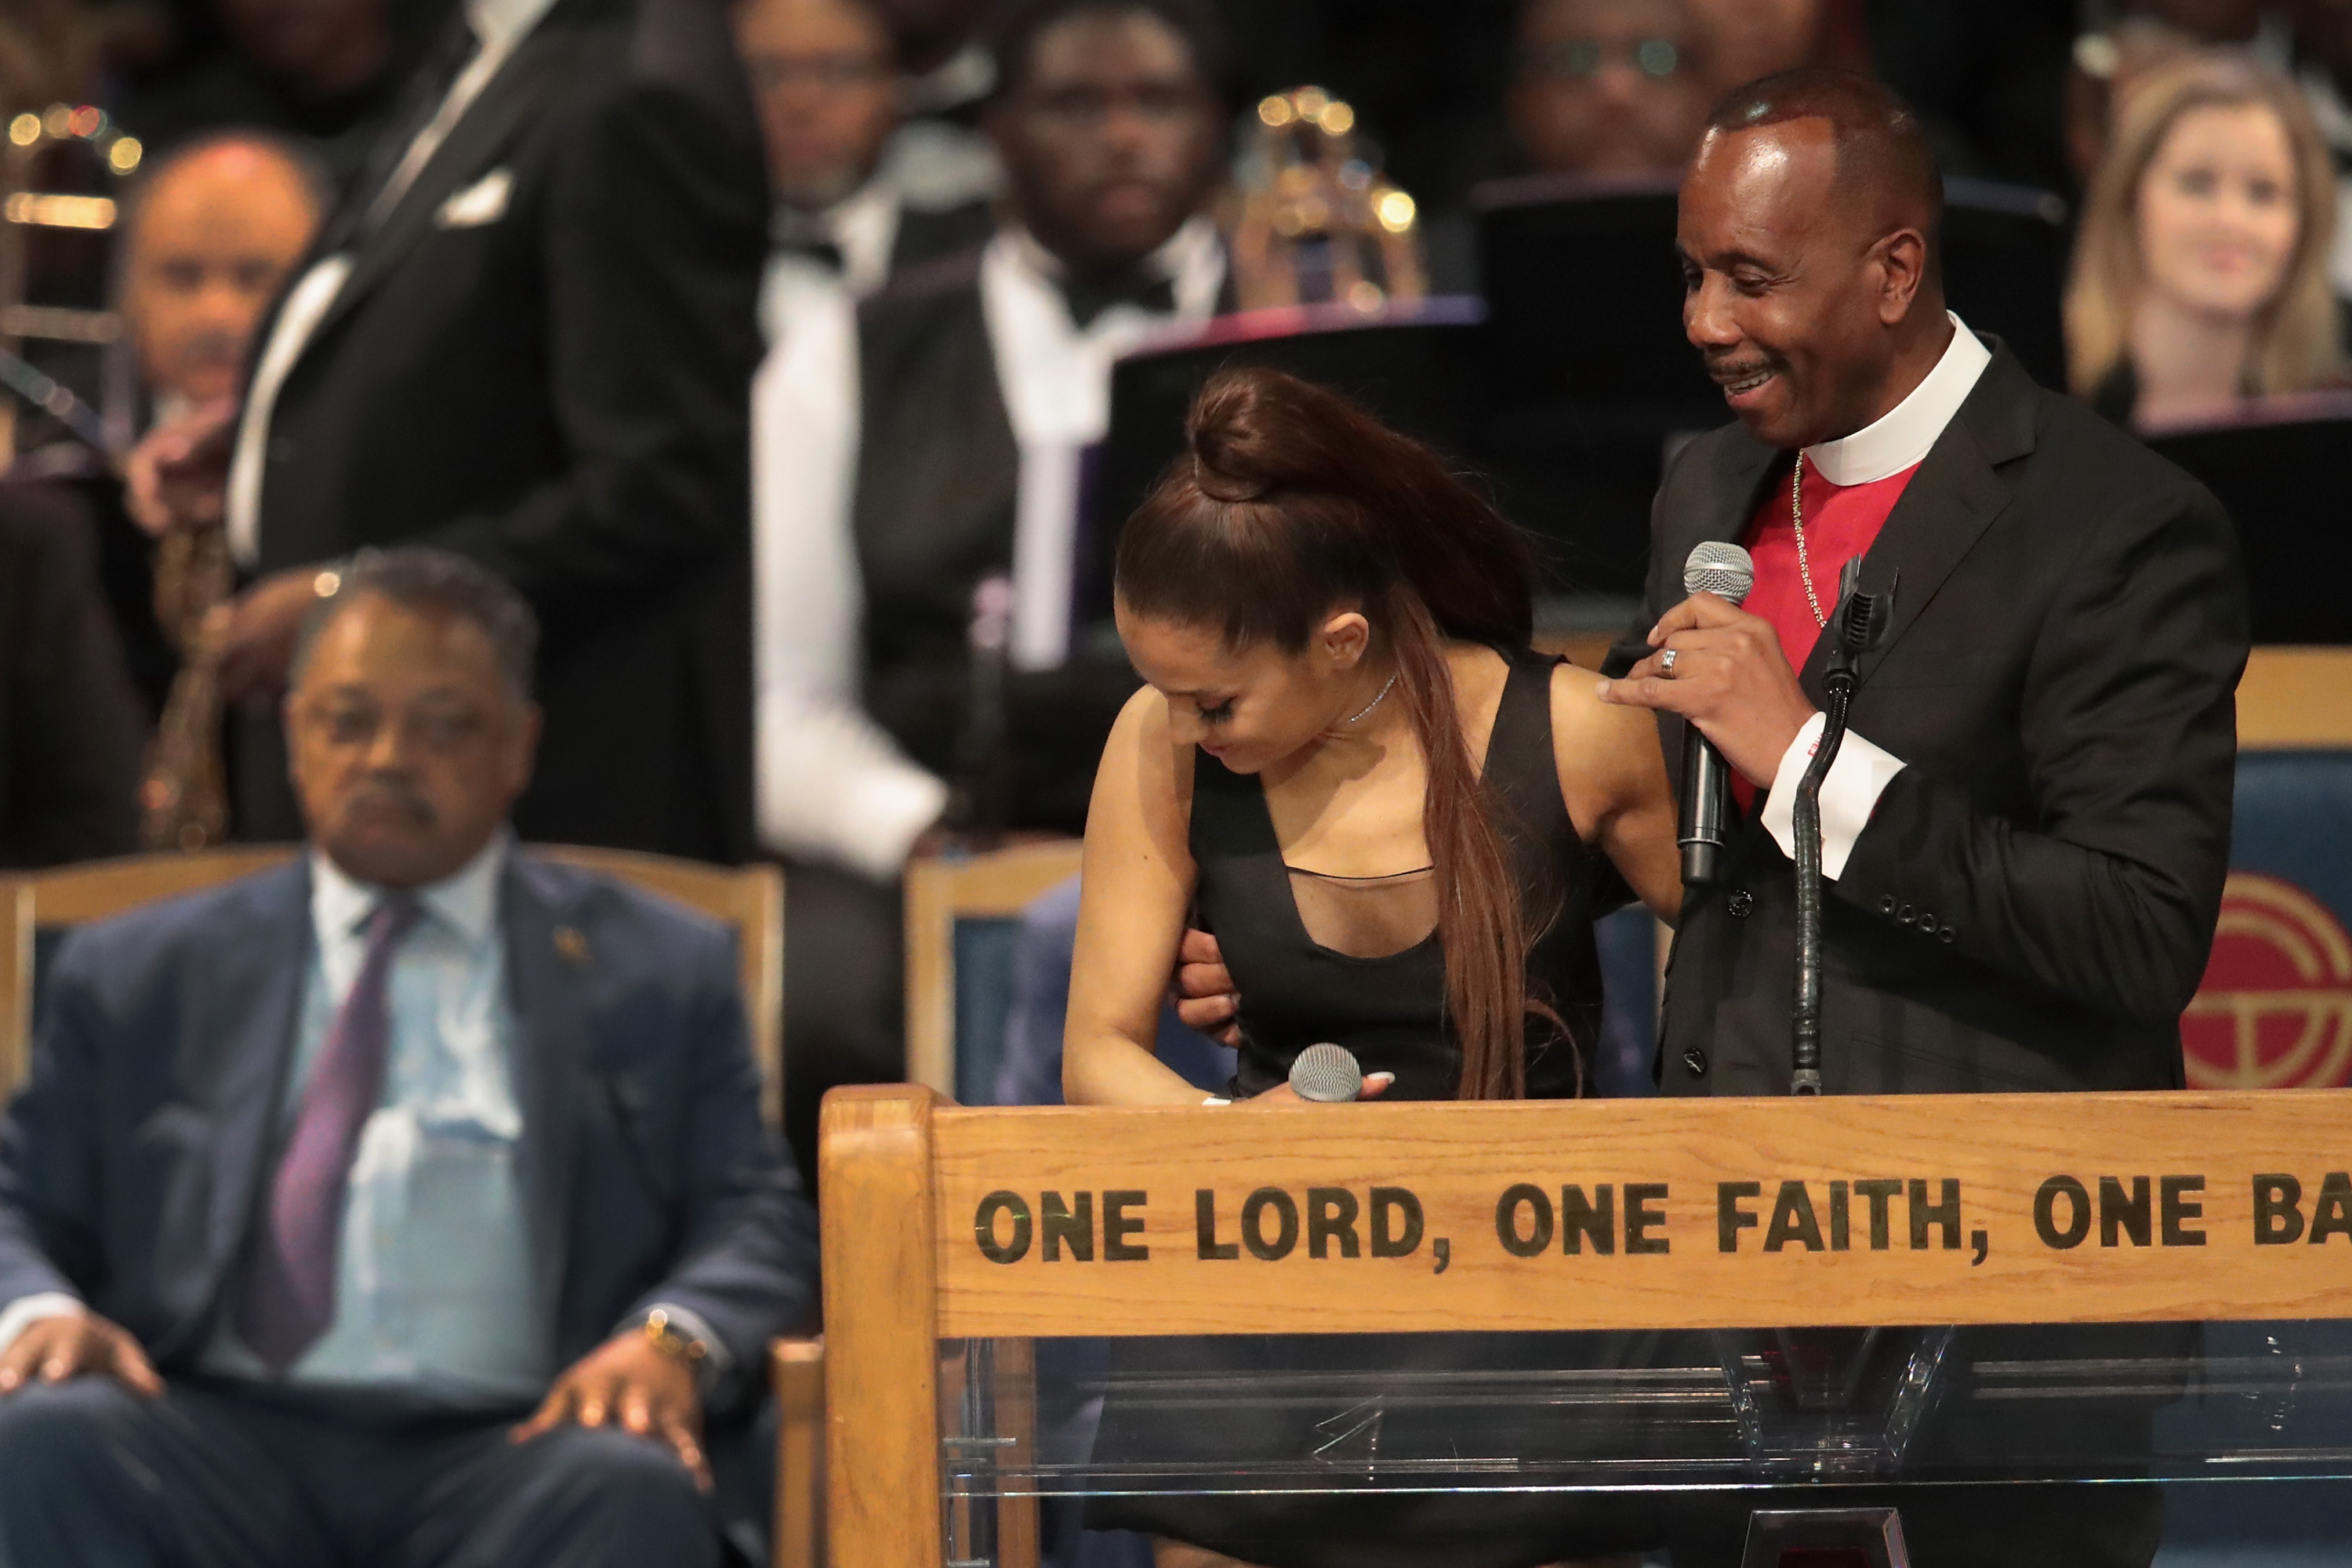 The bishop appeared to touch the side of Ariana's breast (Source: Scott Olson/Getty Images)